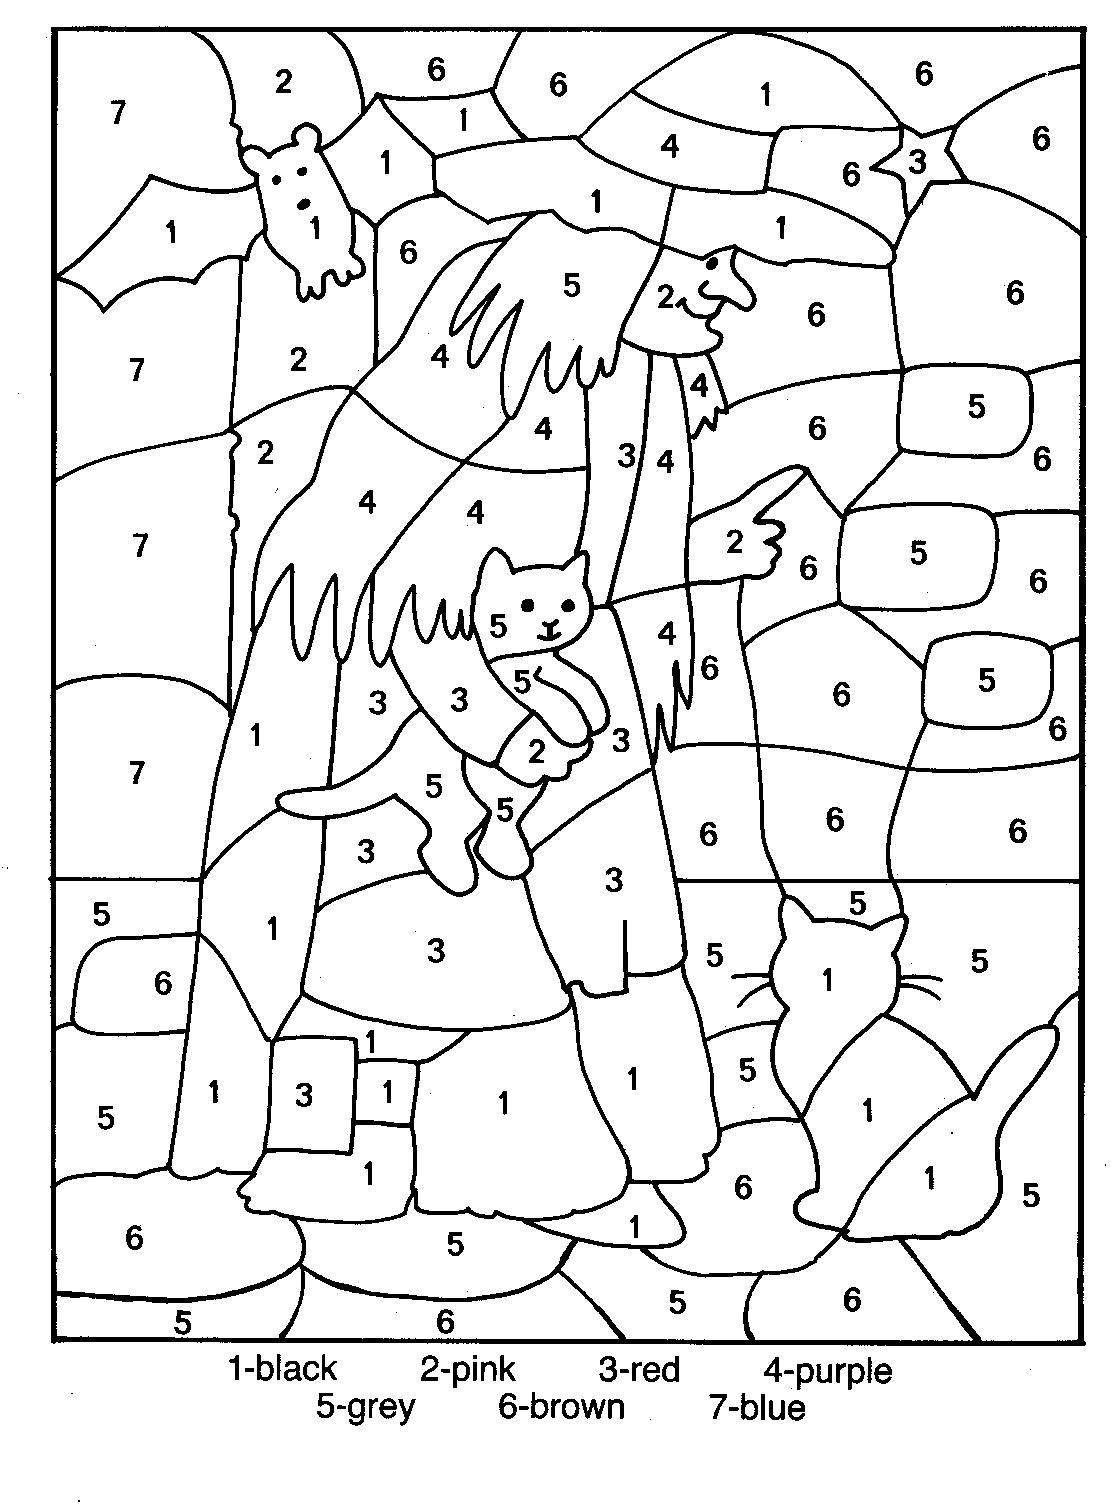 Color By Number Coloring Pages For Kids 4 1 120 1 504 Pixels